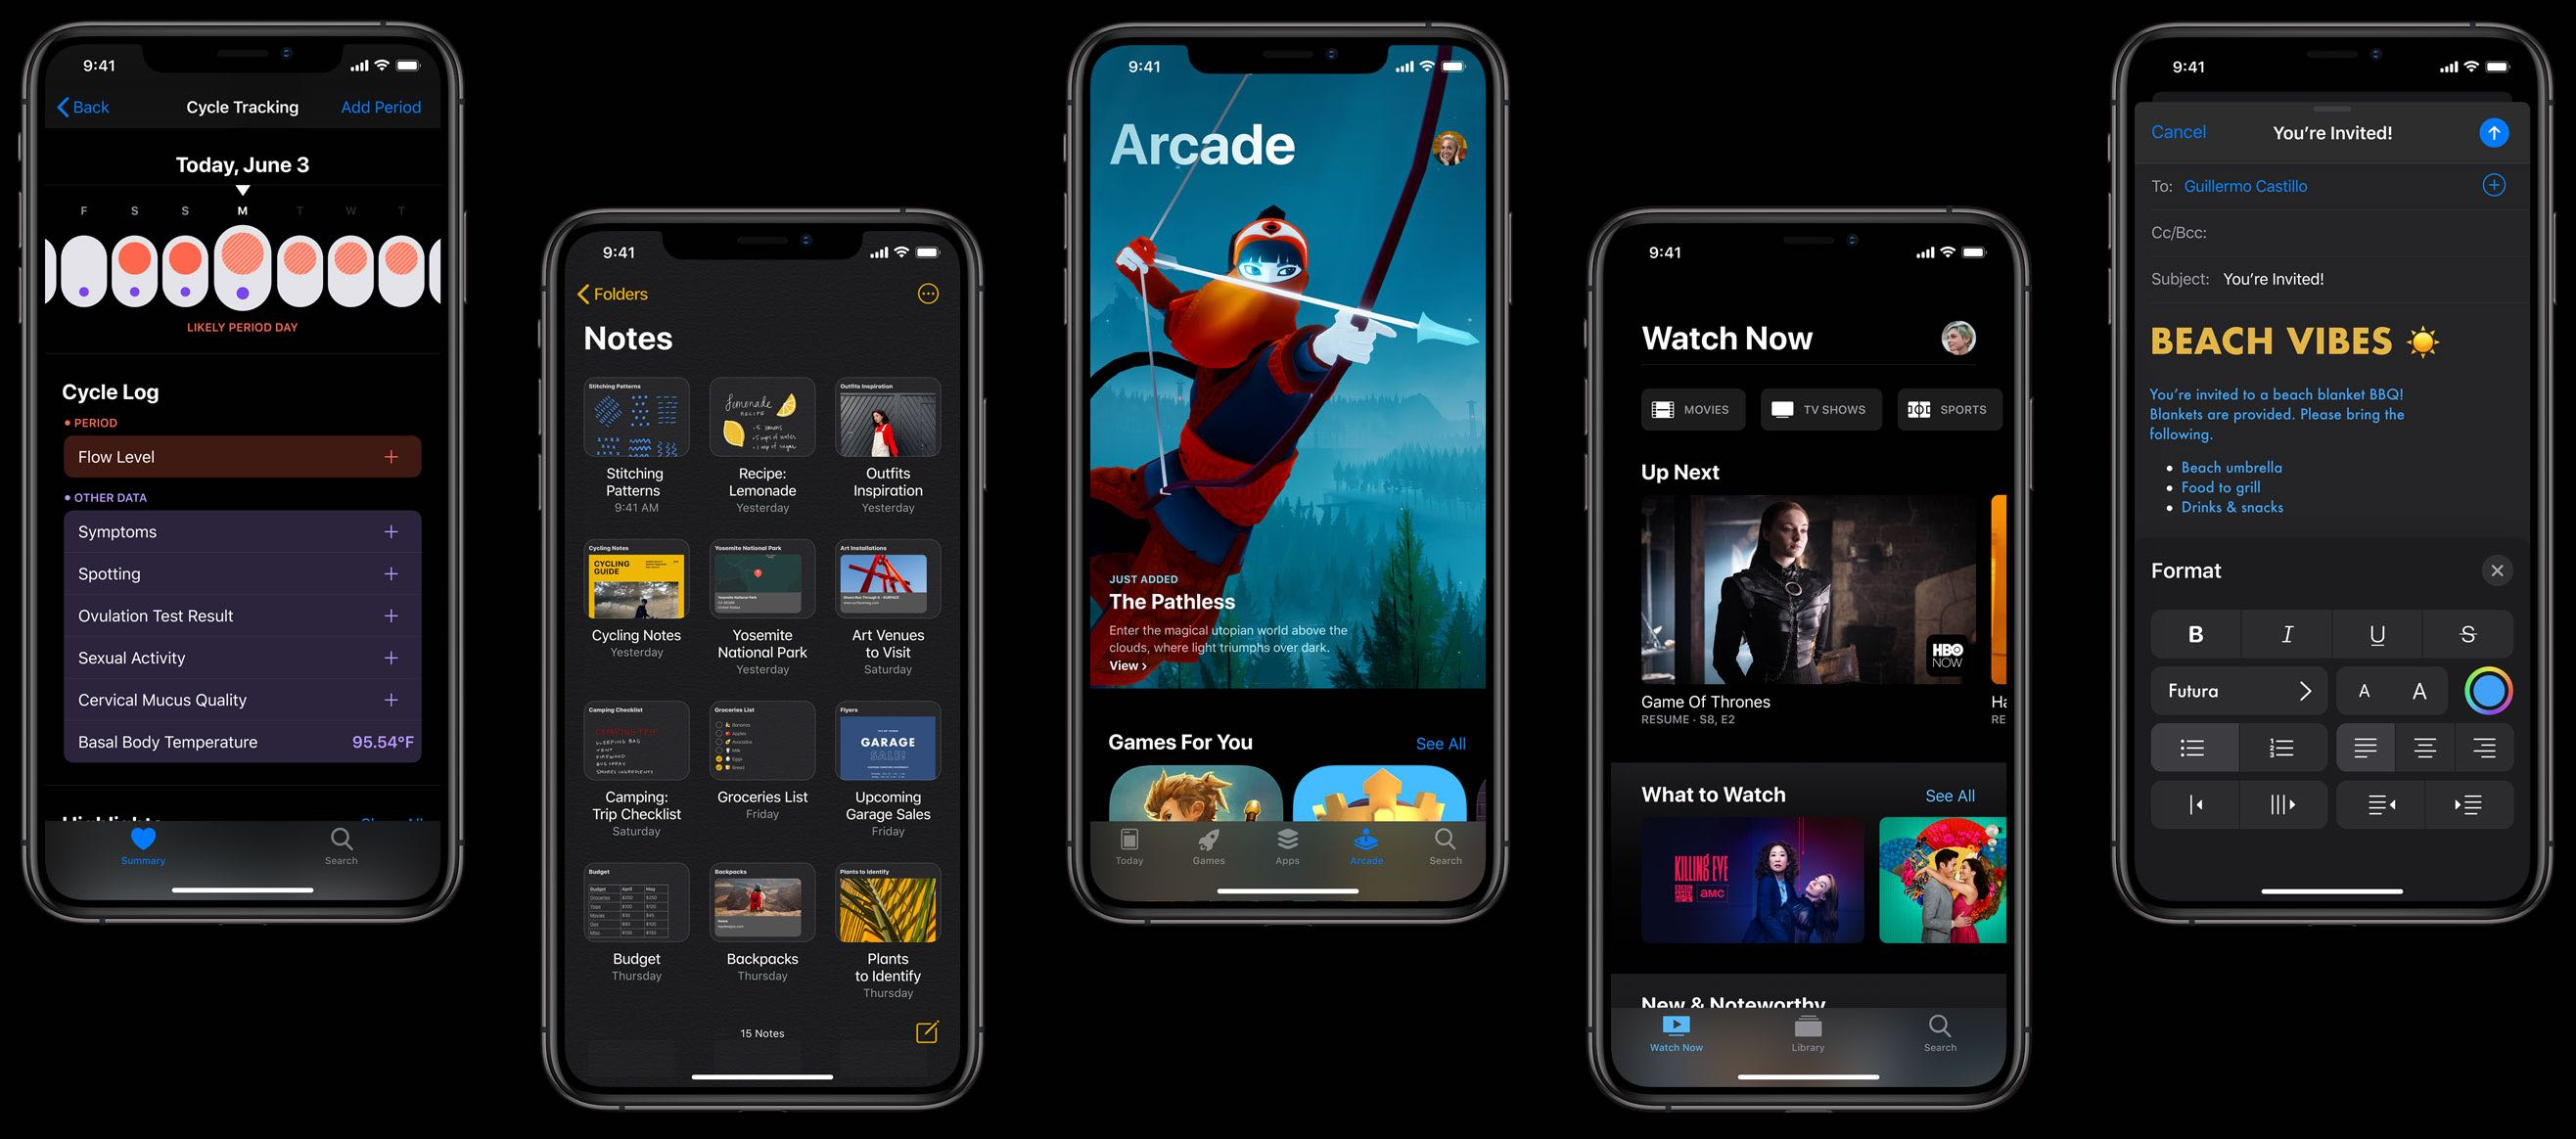 How to downgrade from the iOS 13 or iPadOS beta to the latest iOS 12